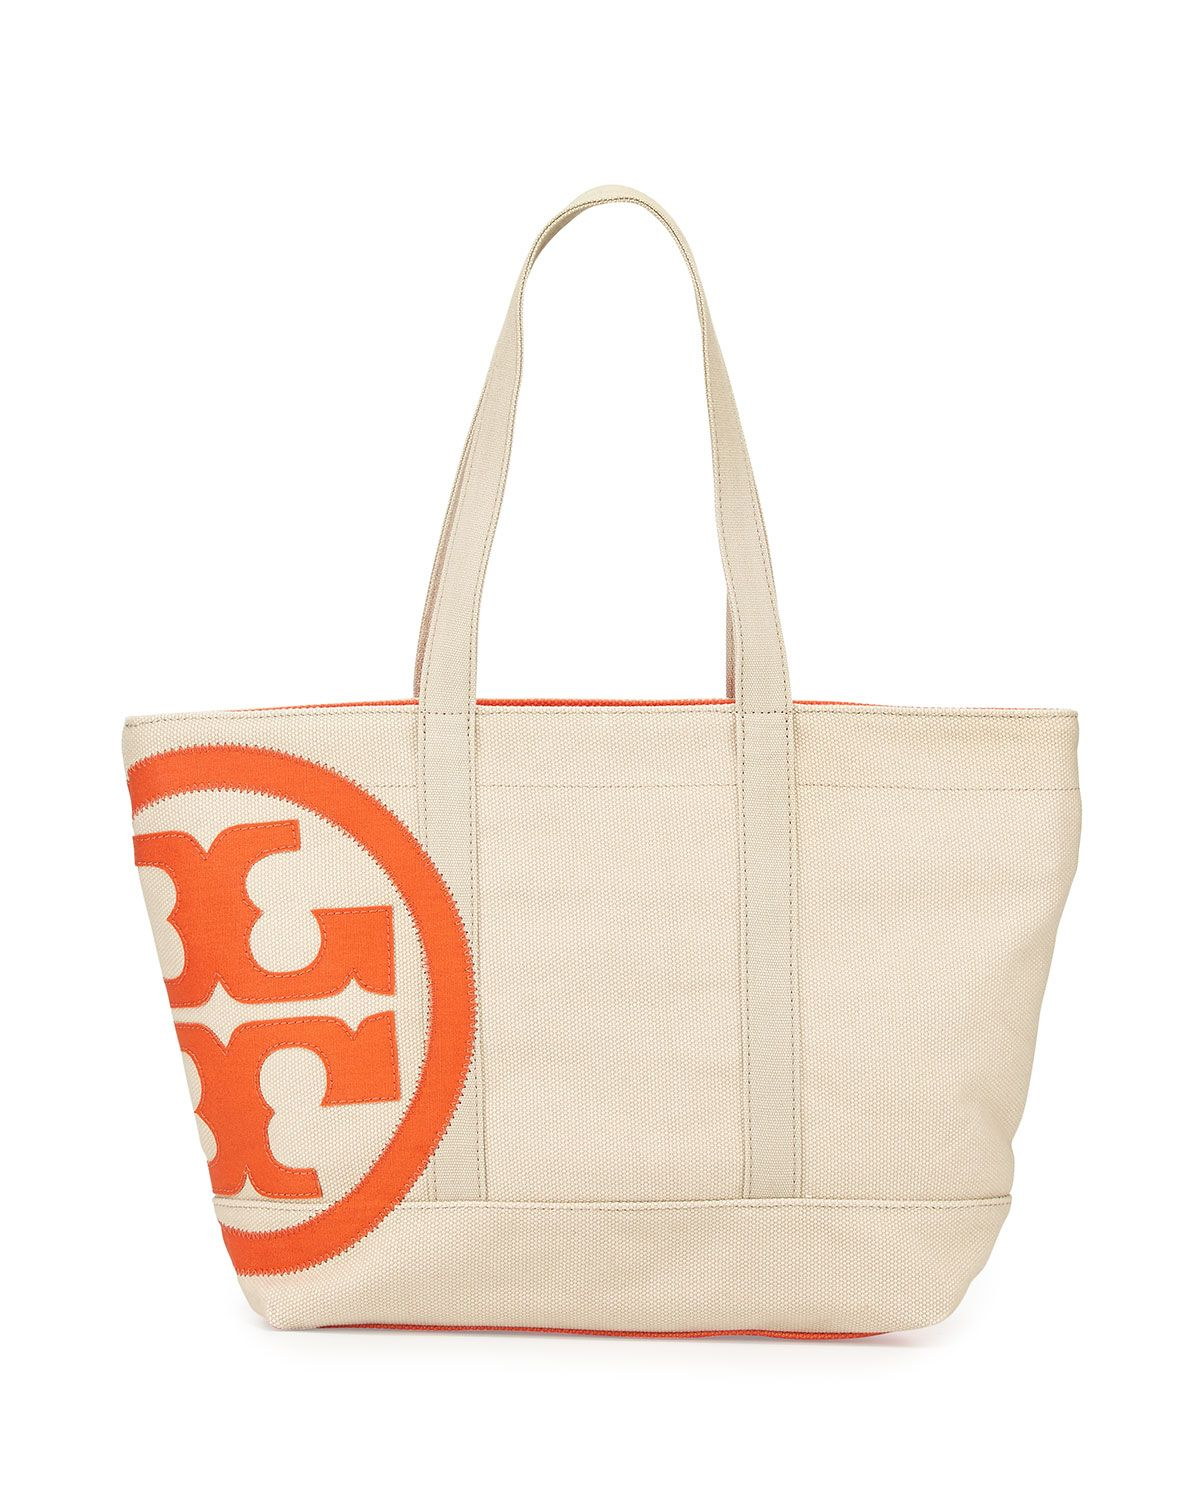 9e6422a22aa Love this Tory Burch Canvas Beach Tote http   rstyle.me ~